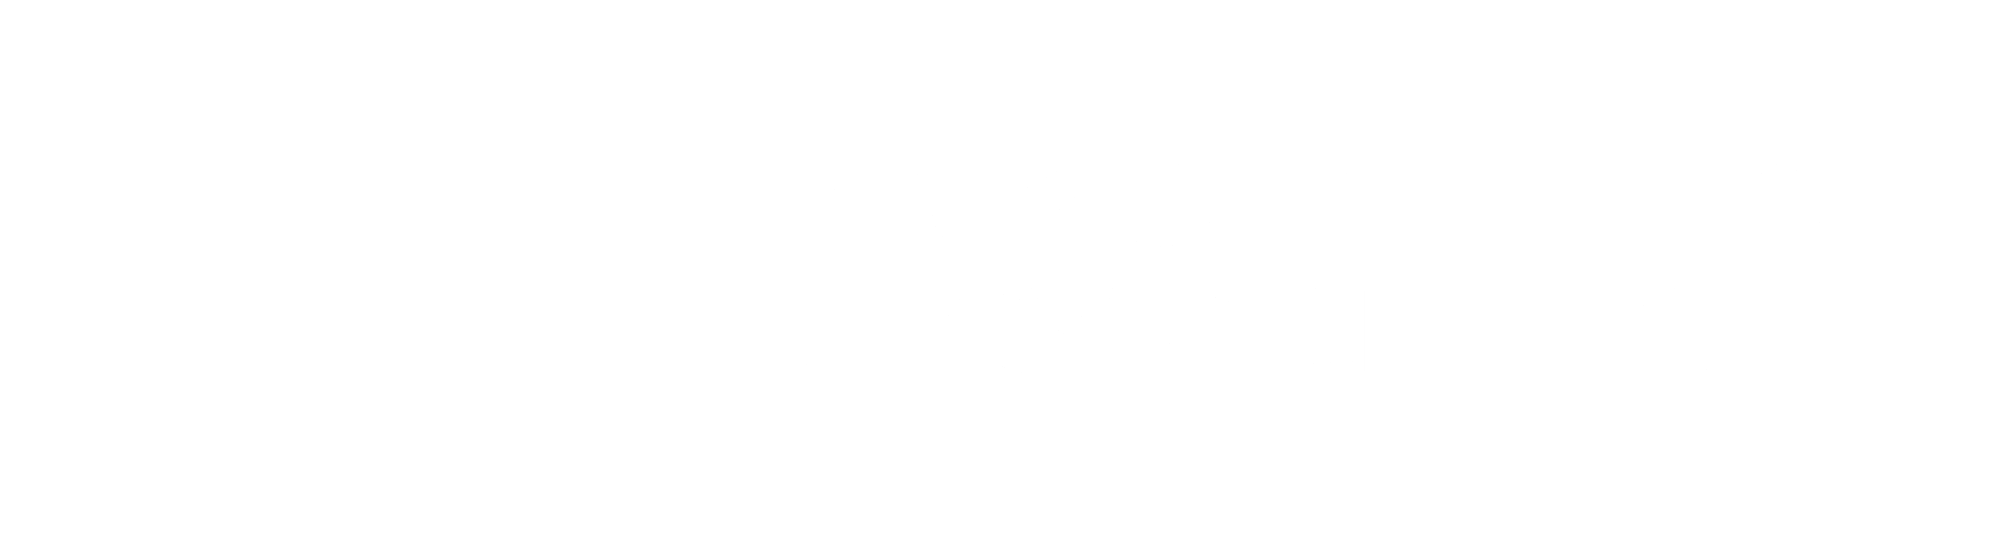 Dr. Scapinello and Associates